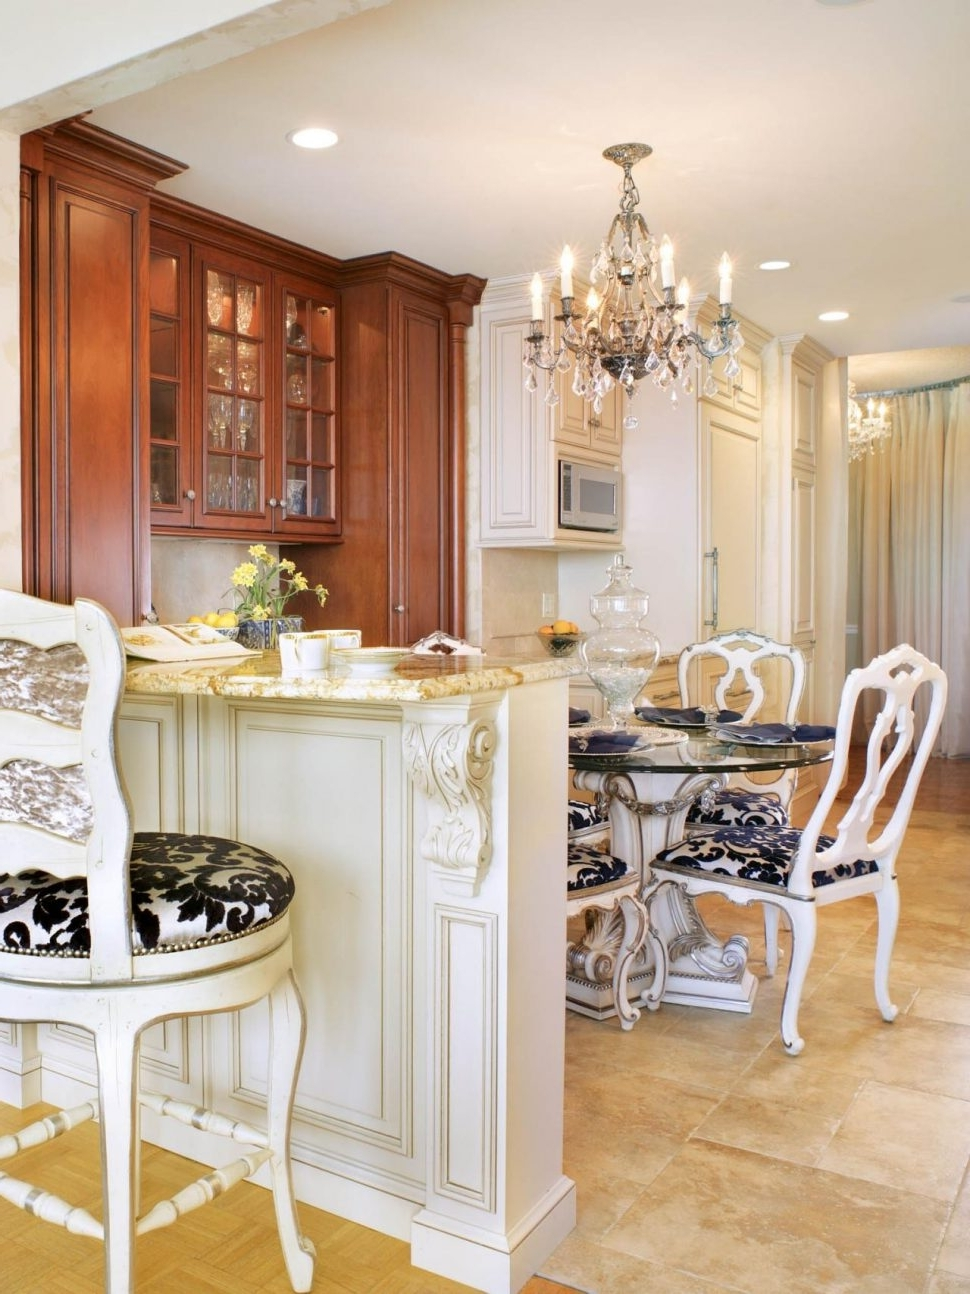 French Country Chandeliers For Kitchen Intended For Latest Chandeliers Design : Fabulous Charming Kitchen Chandelier (View 17 of 20)